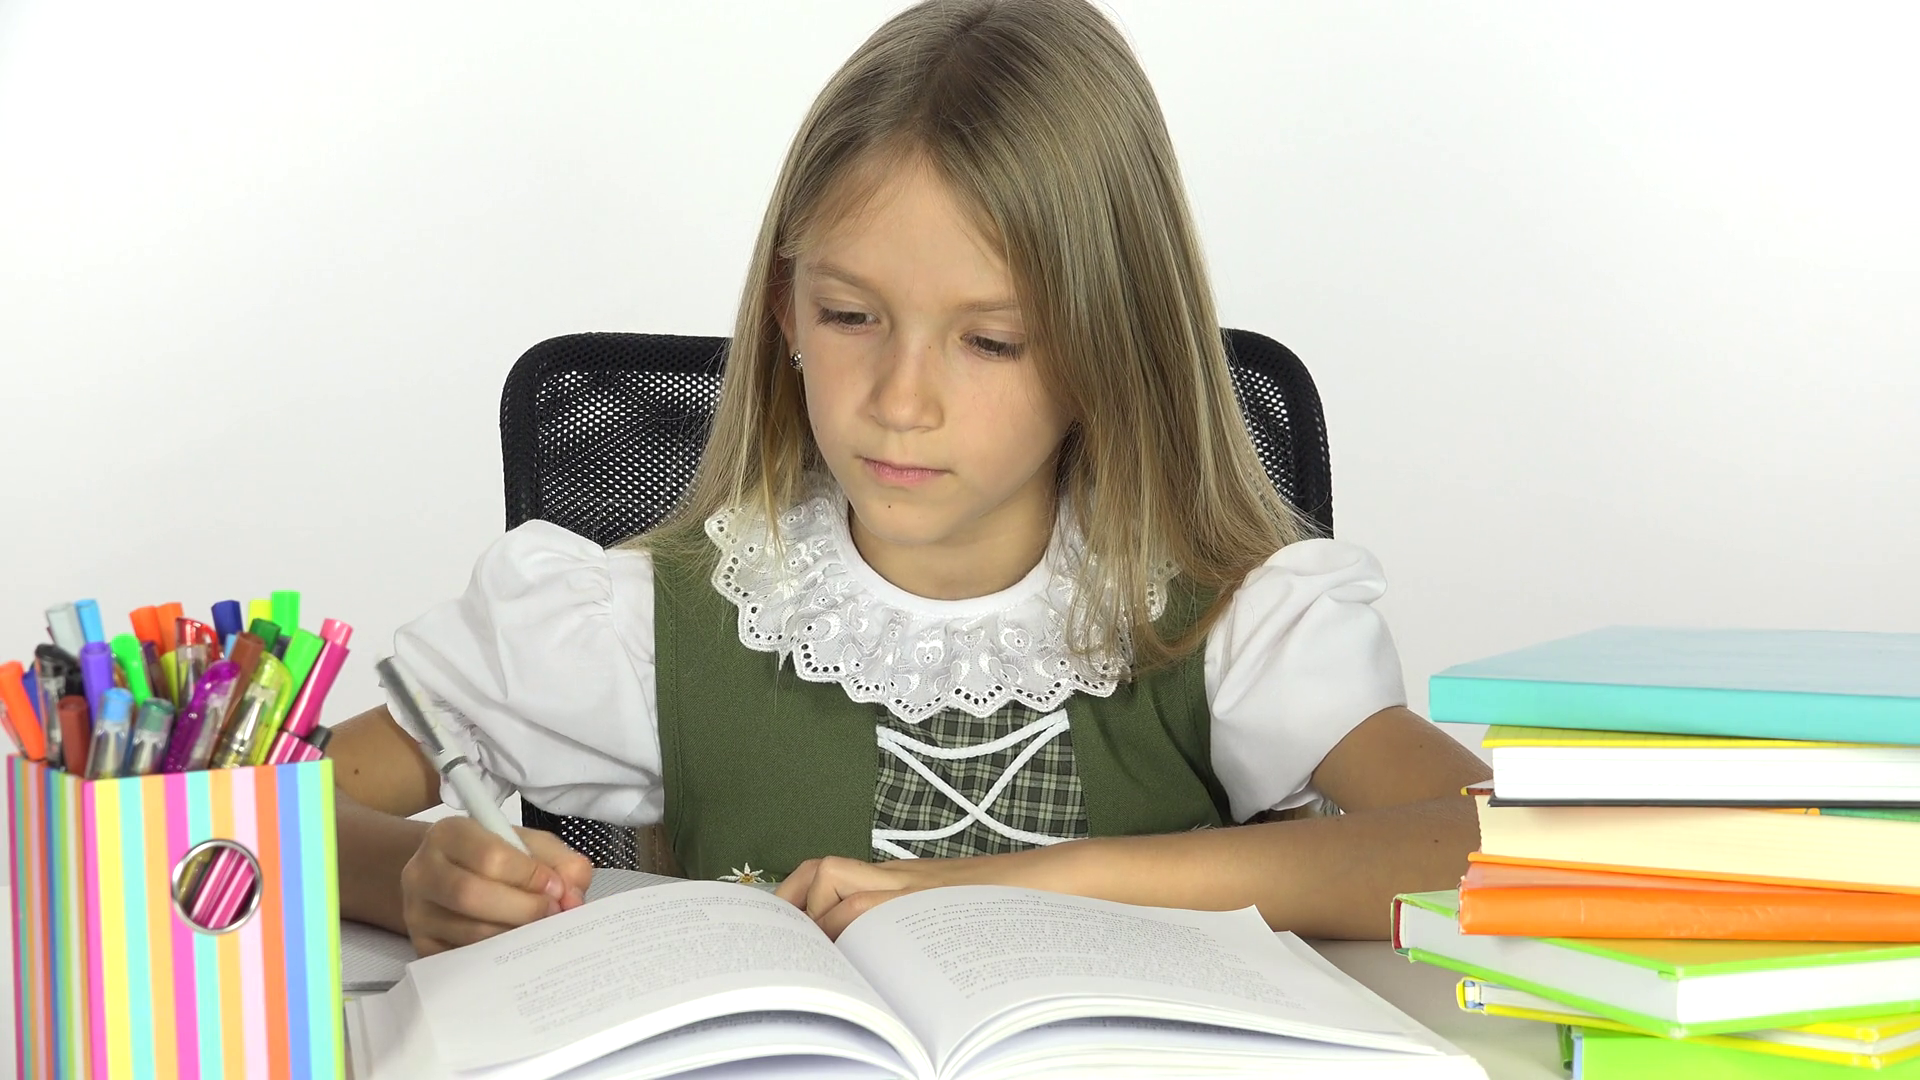 PNG HD Of Students Reading - 130116